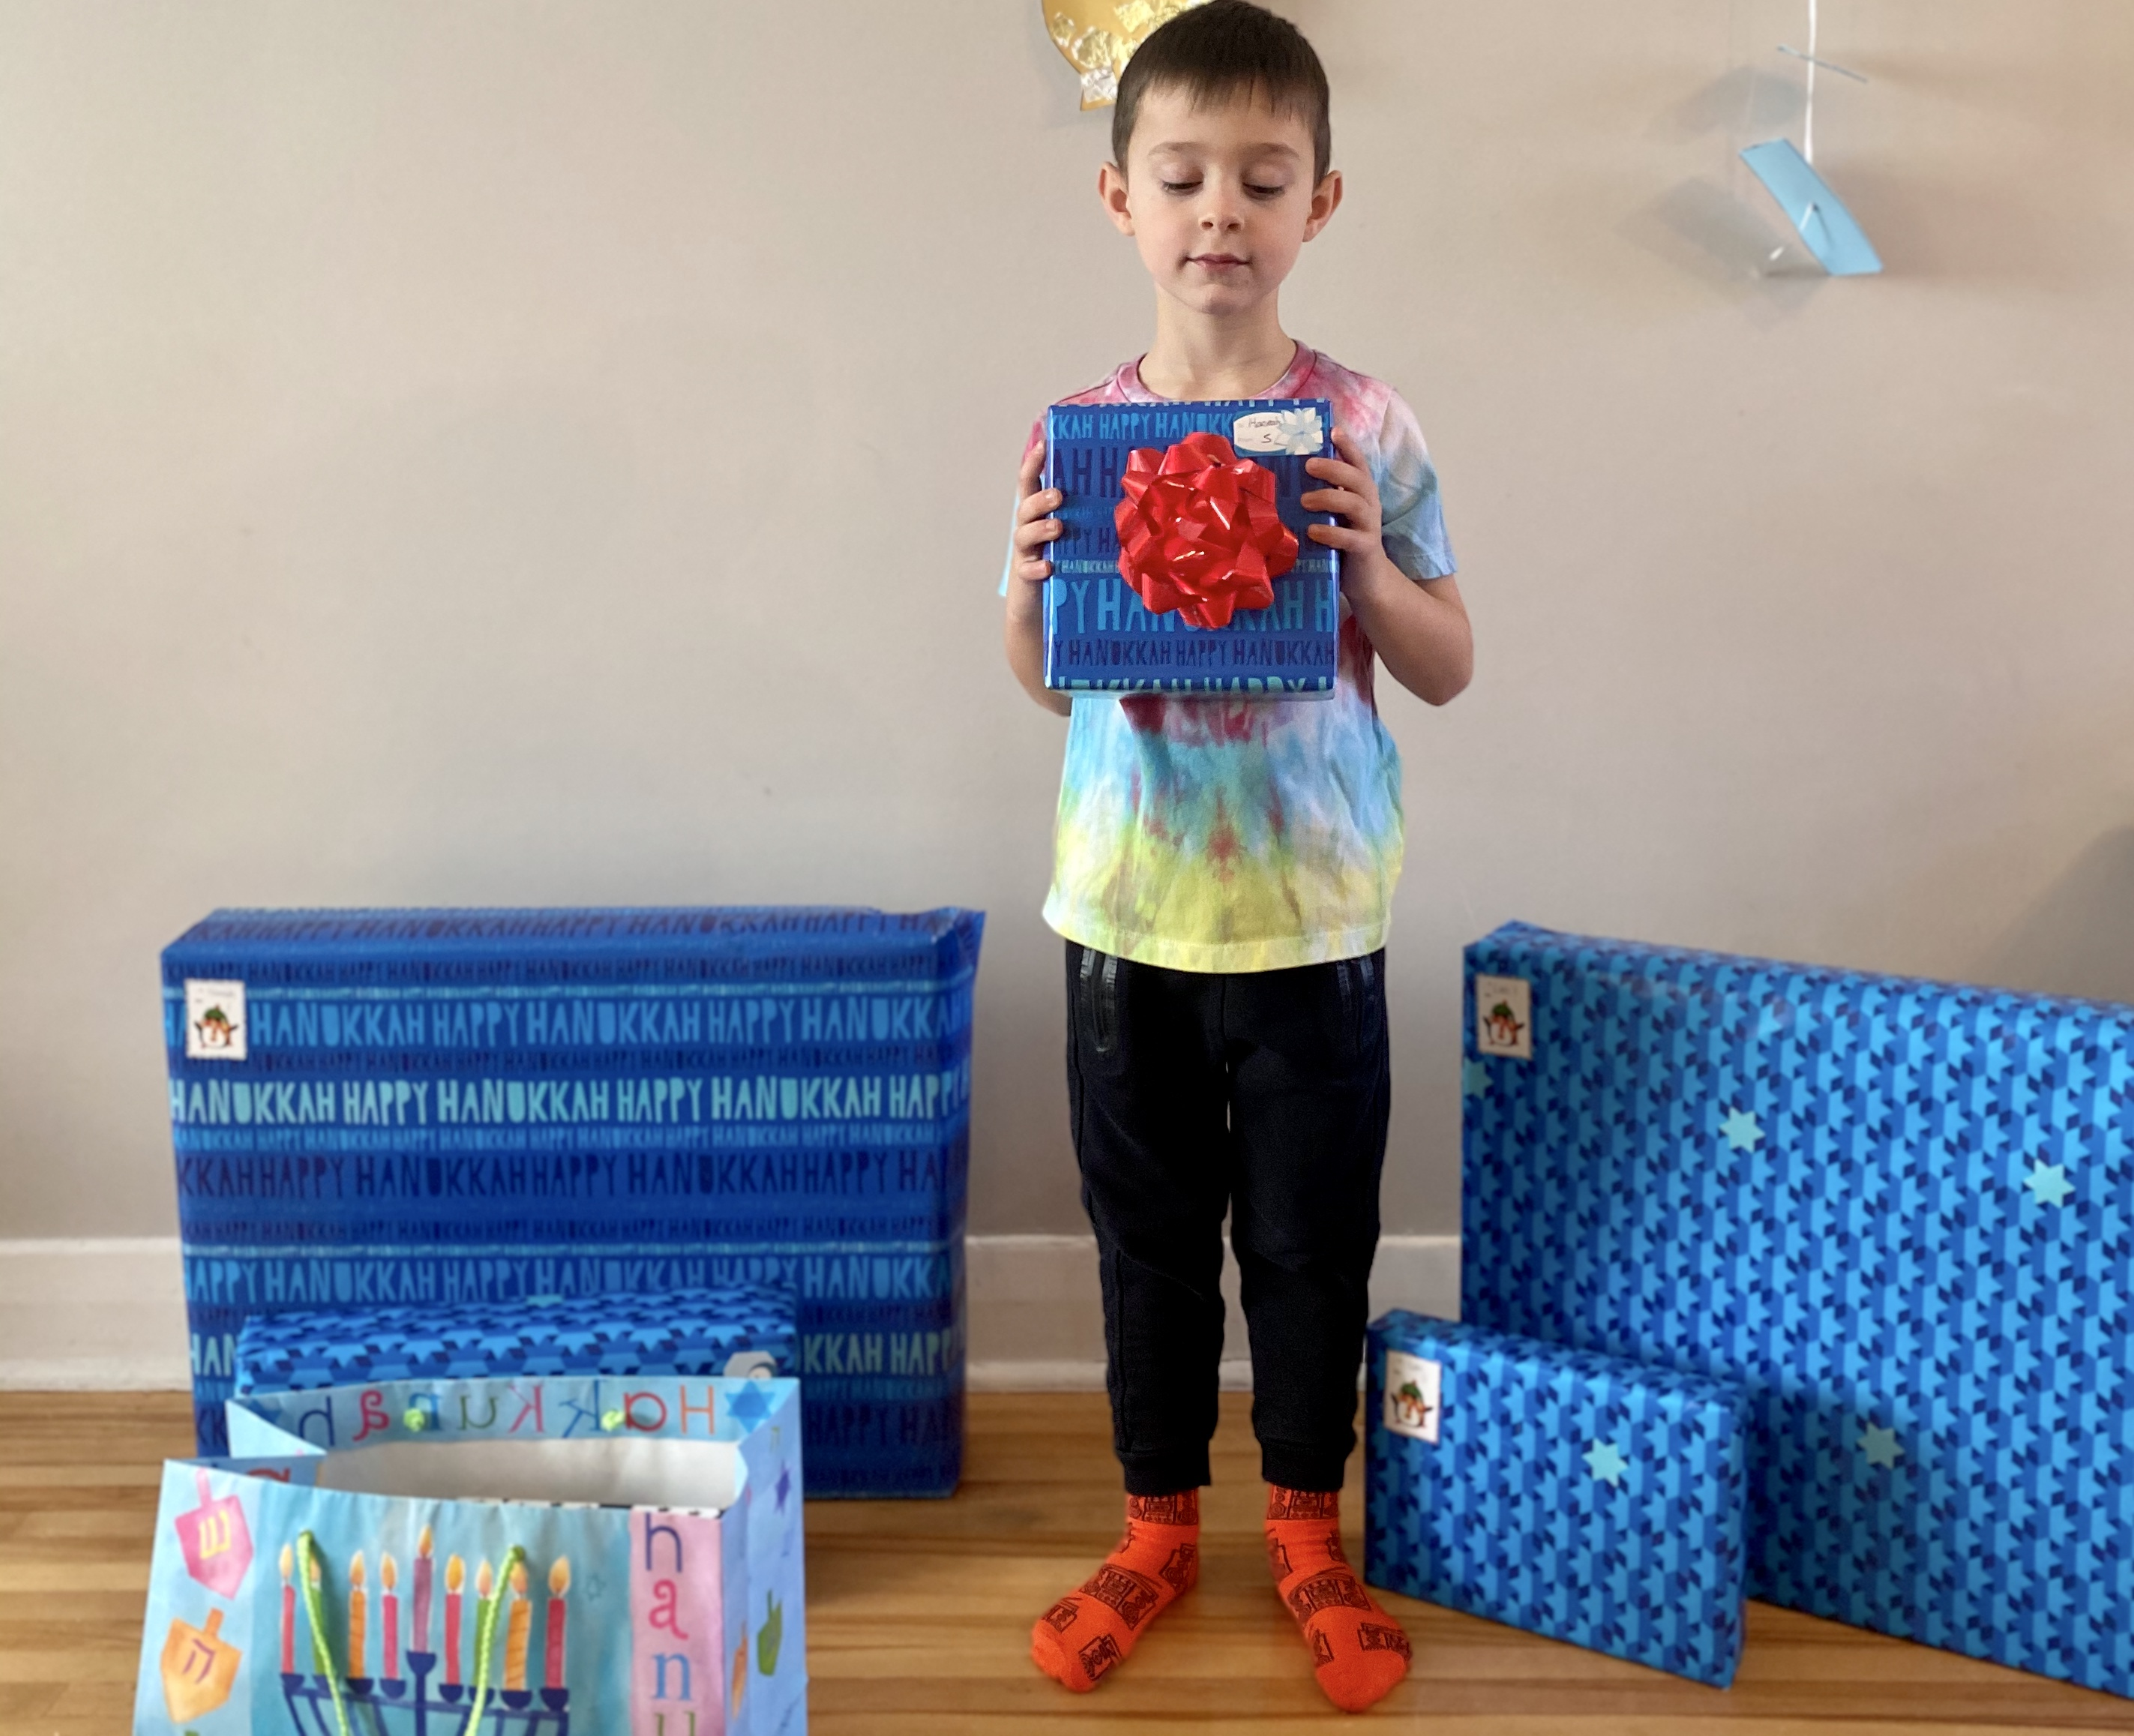 The Essential Children's Gift Guide, by Age